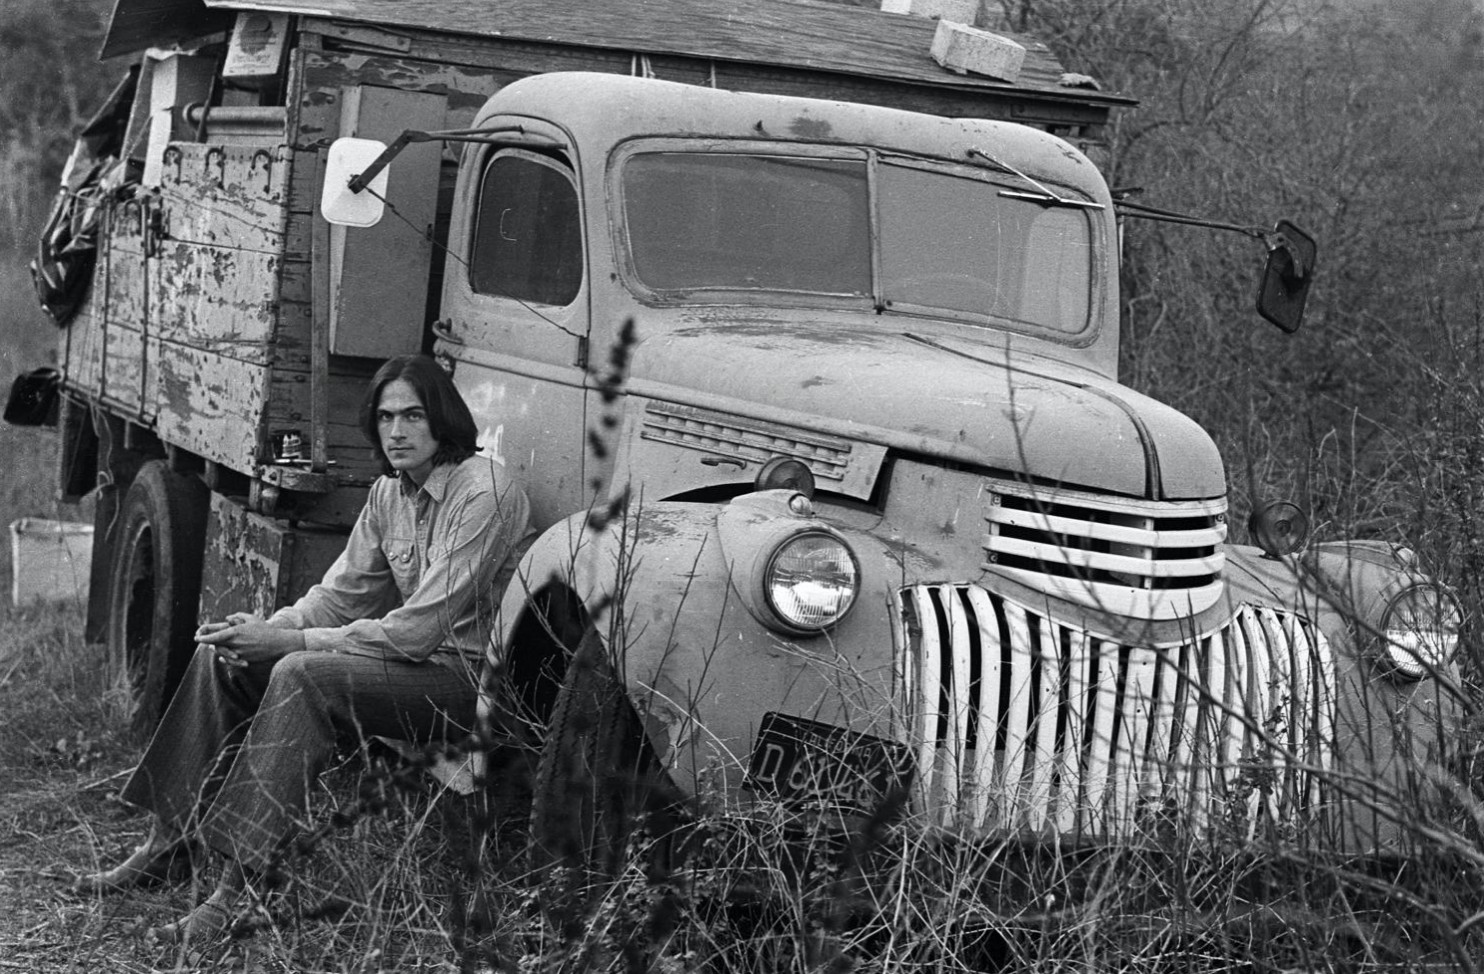 James Taylor and Old truck